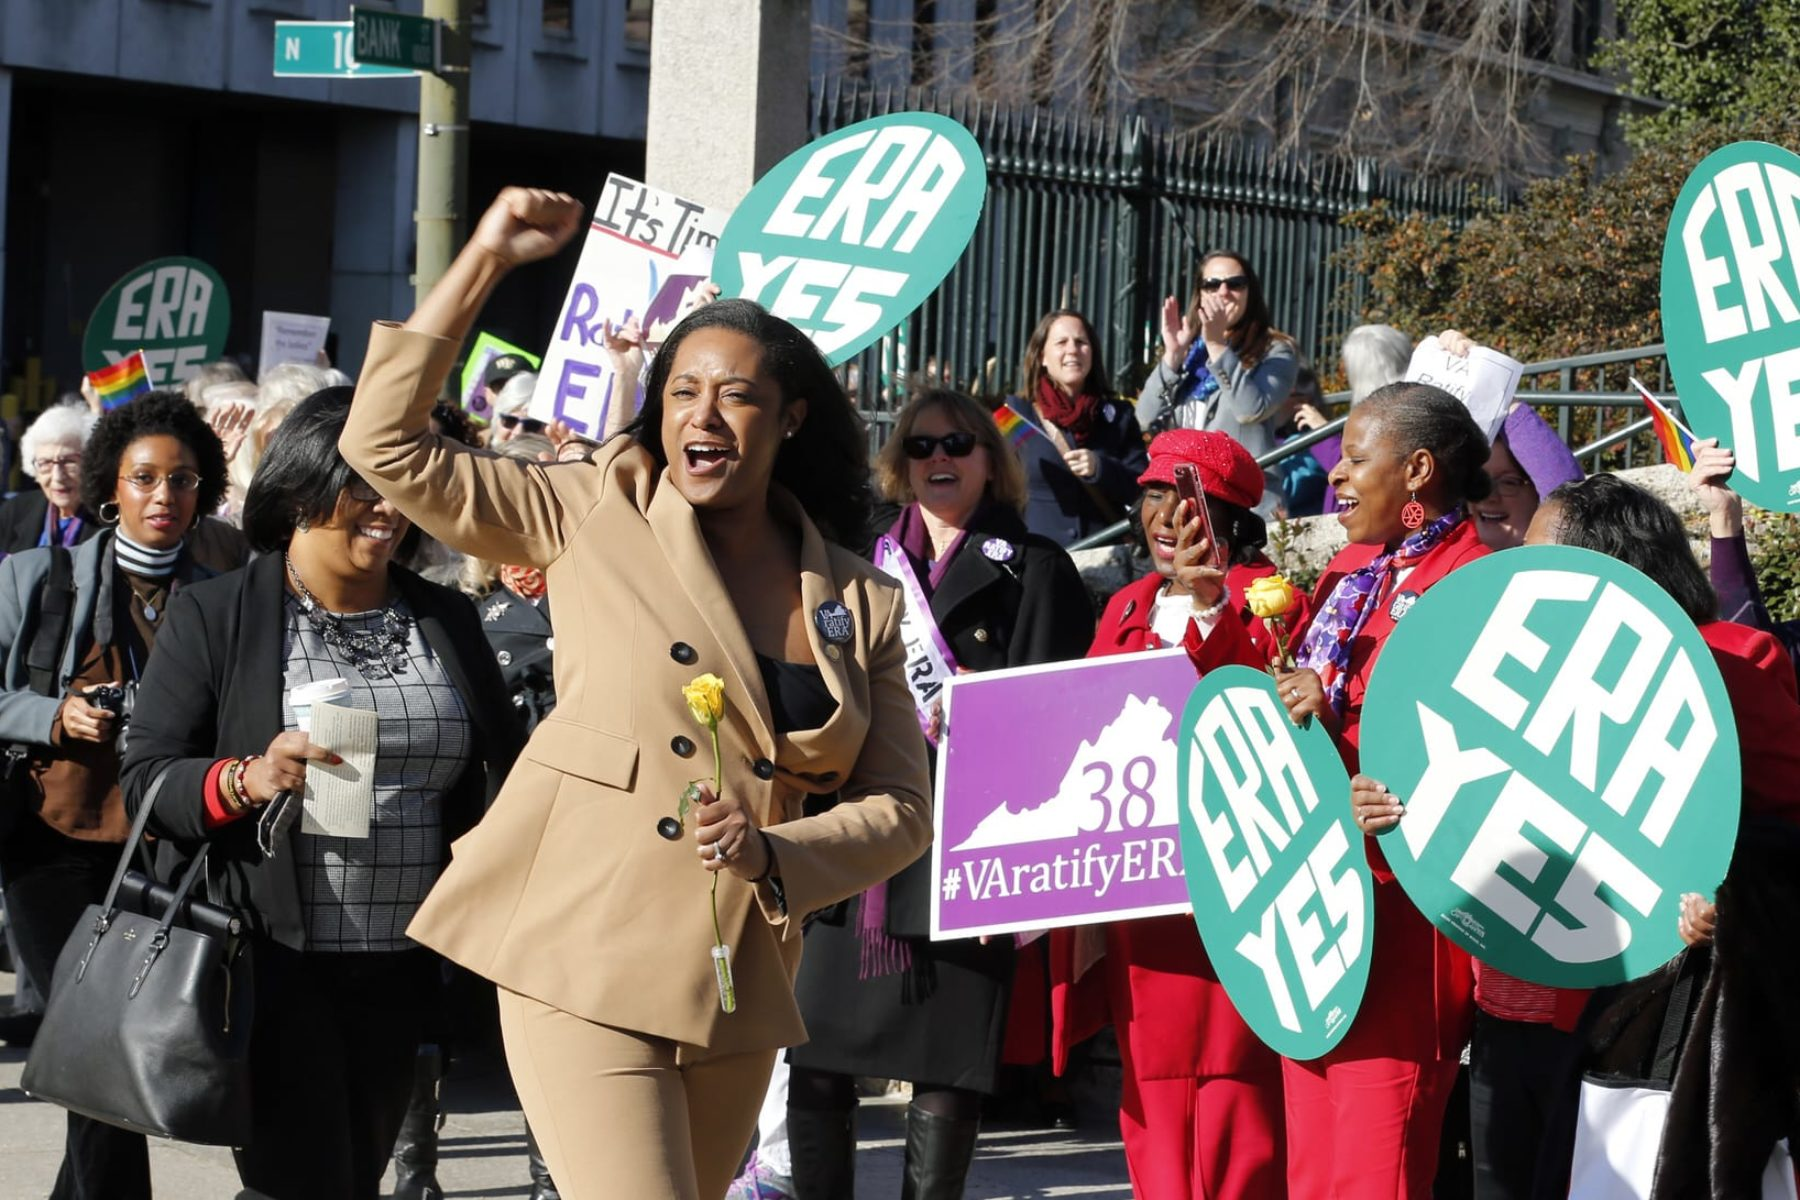 Delegate Jennifer Carroll Foy, D-Price William, cheers on Equal Rights Amendment demonstrators outside the Capitol in Richmond, VA.